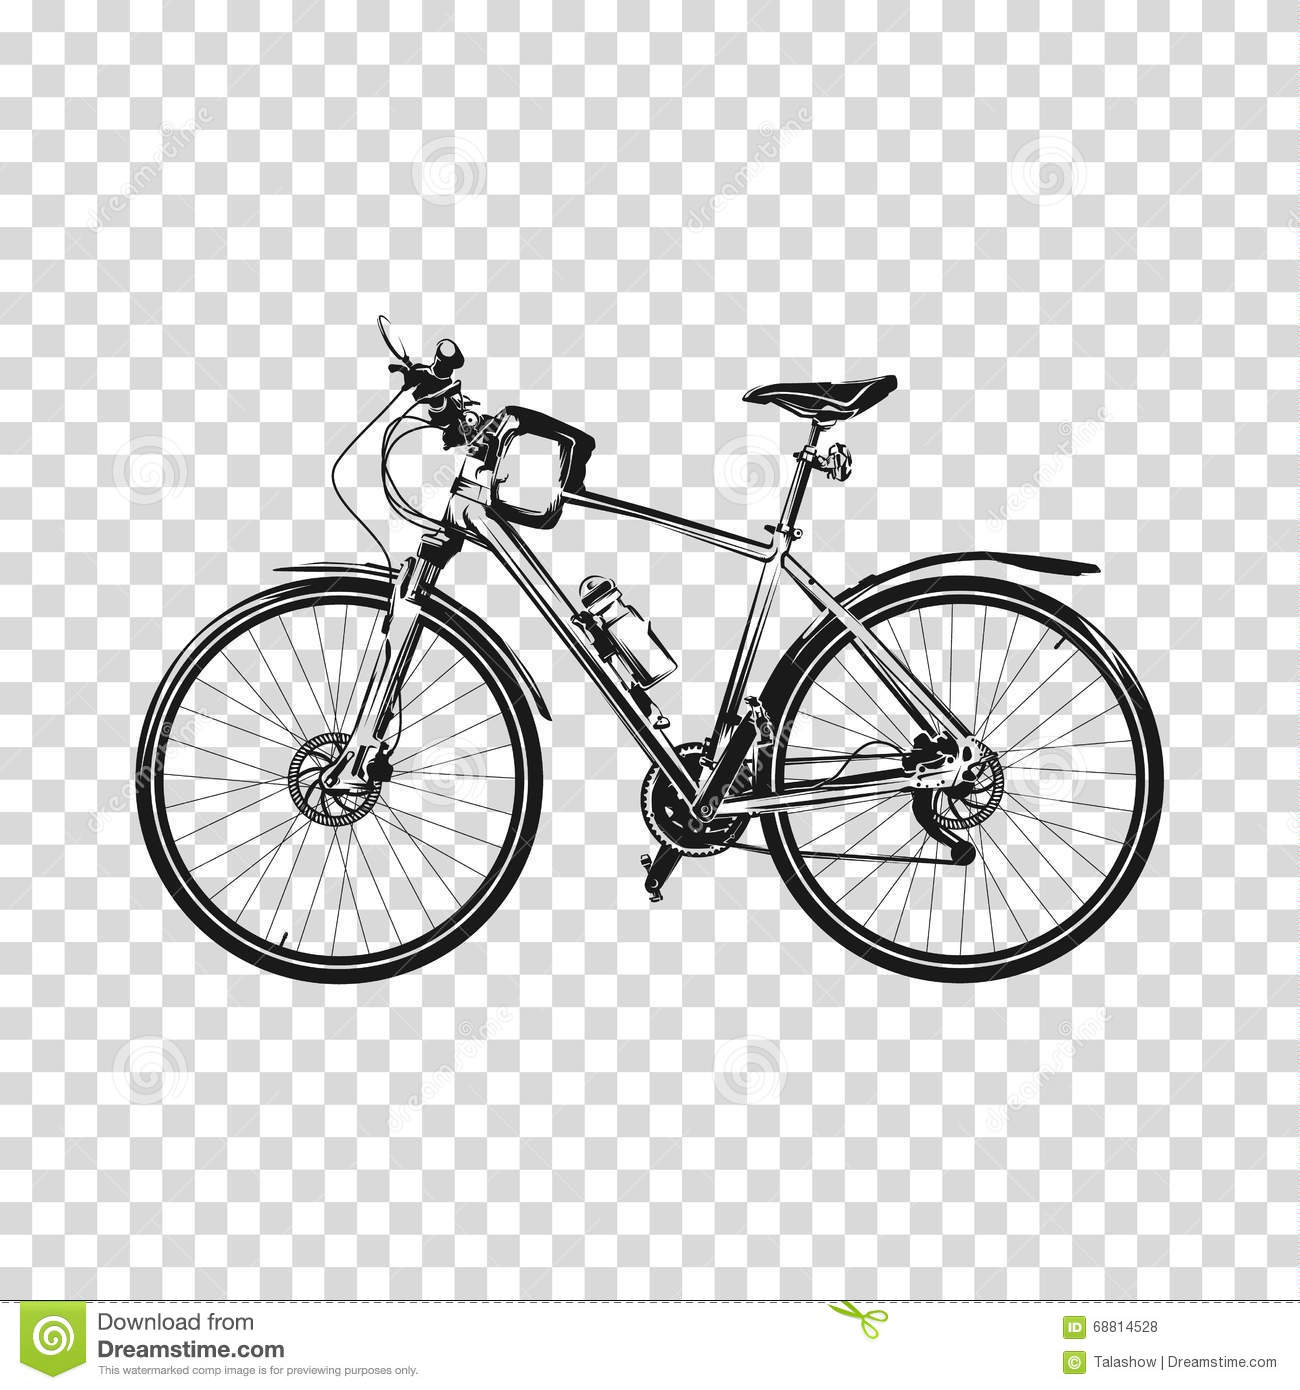 Bike a transparent background. Bicycle silhouette illustration vector ...